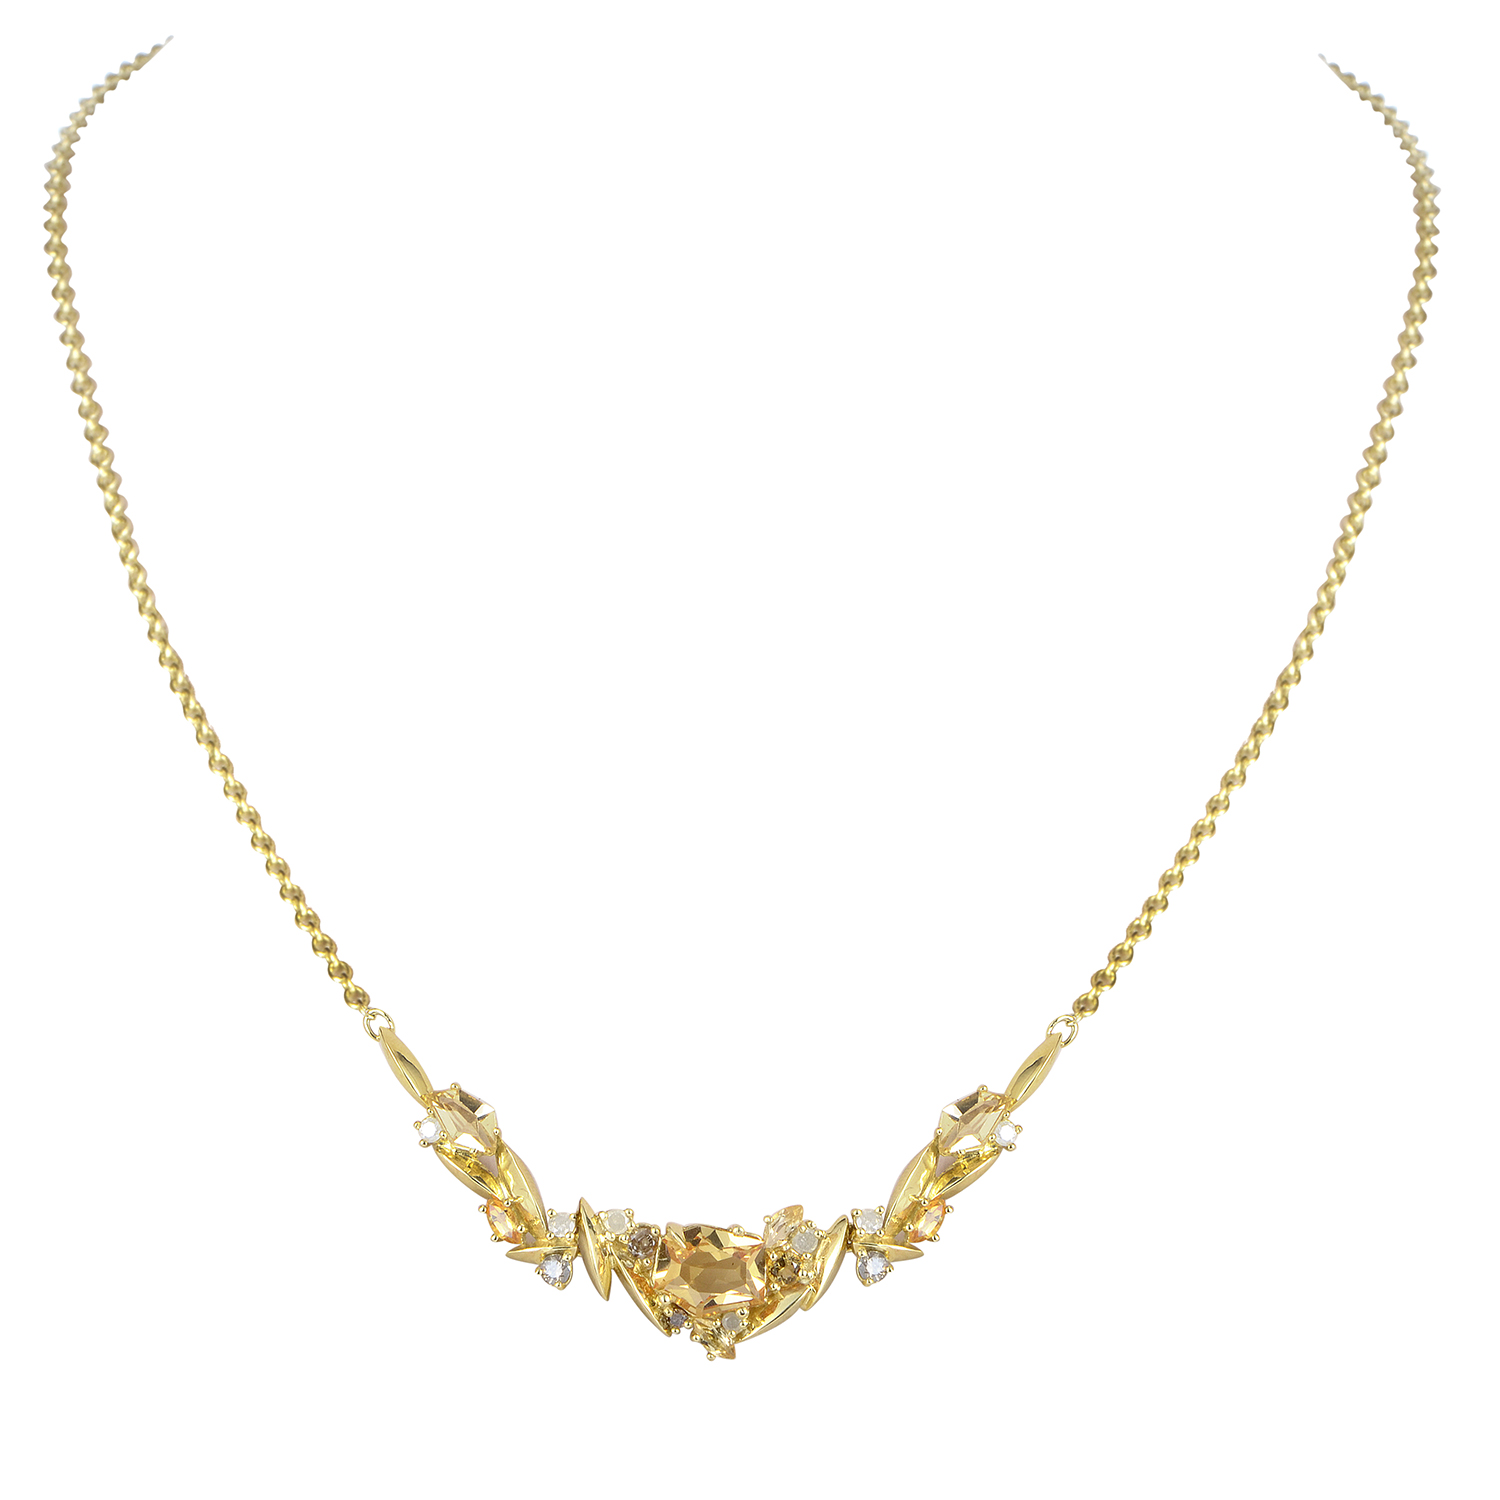 Alexis Bittar 18K Yellow Gold